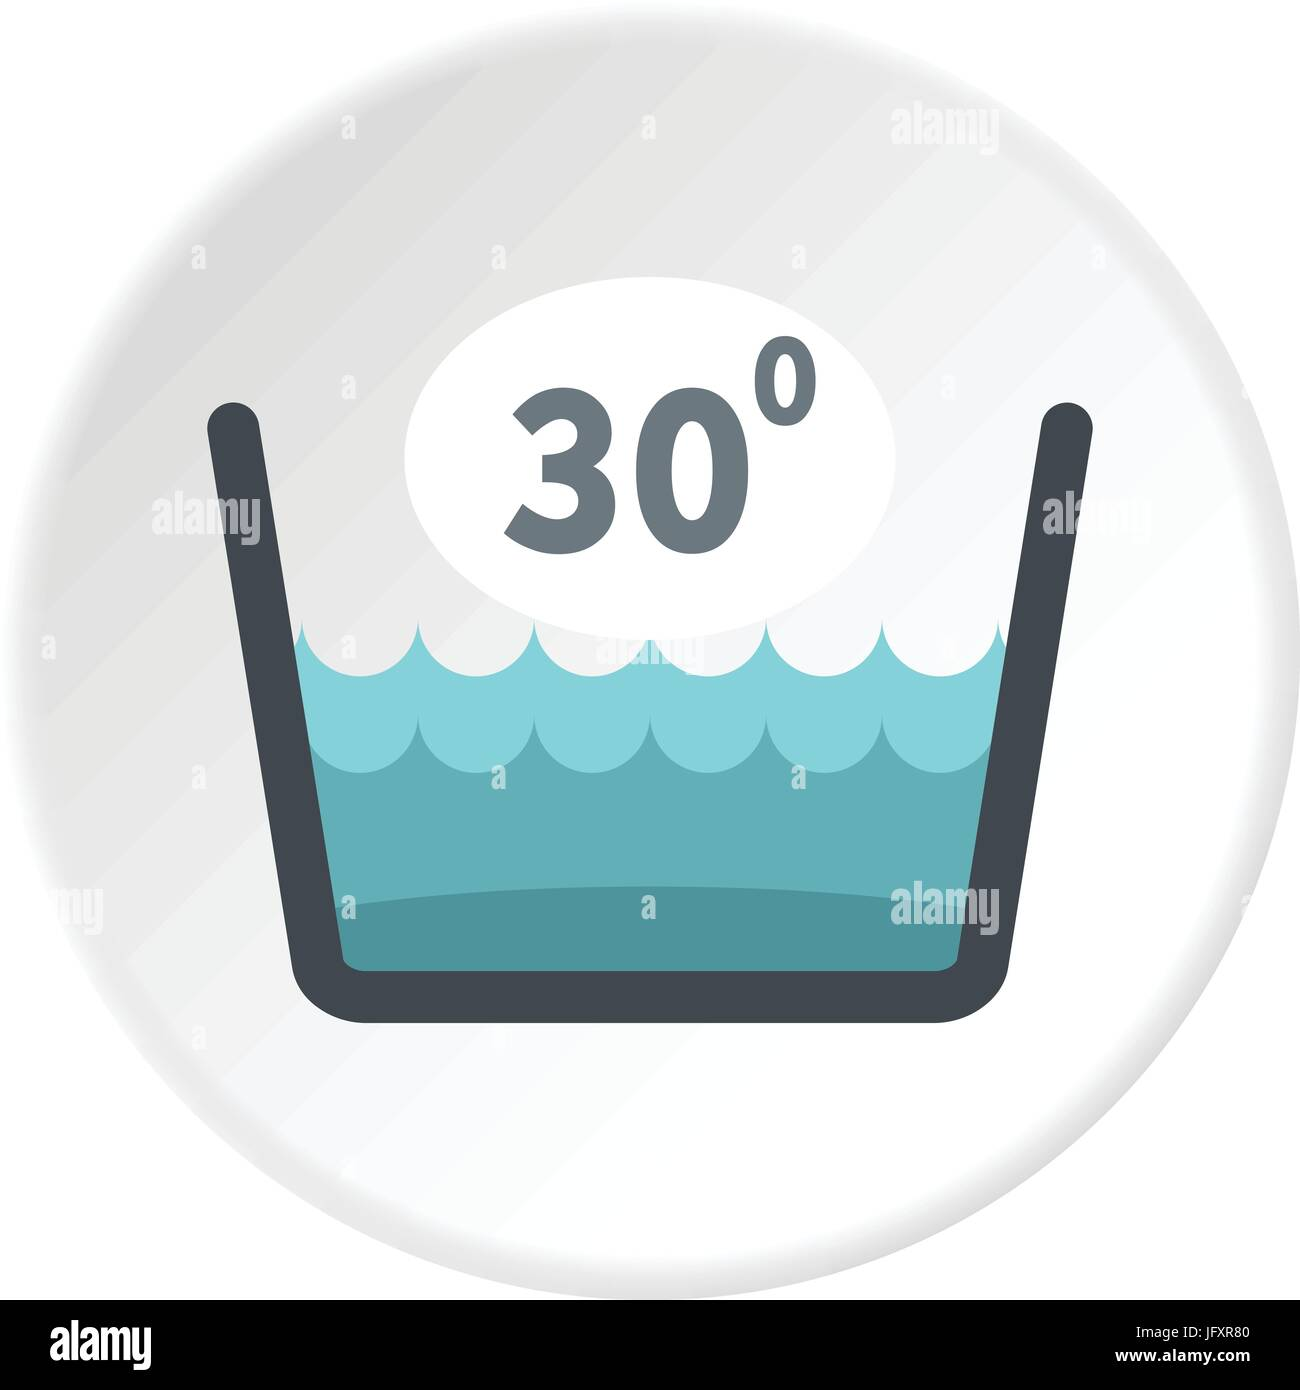 Delicate Gentle Thirty Degrees Icon Circle Stock Vector